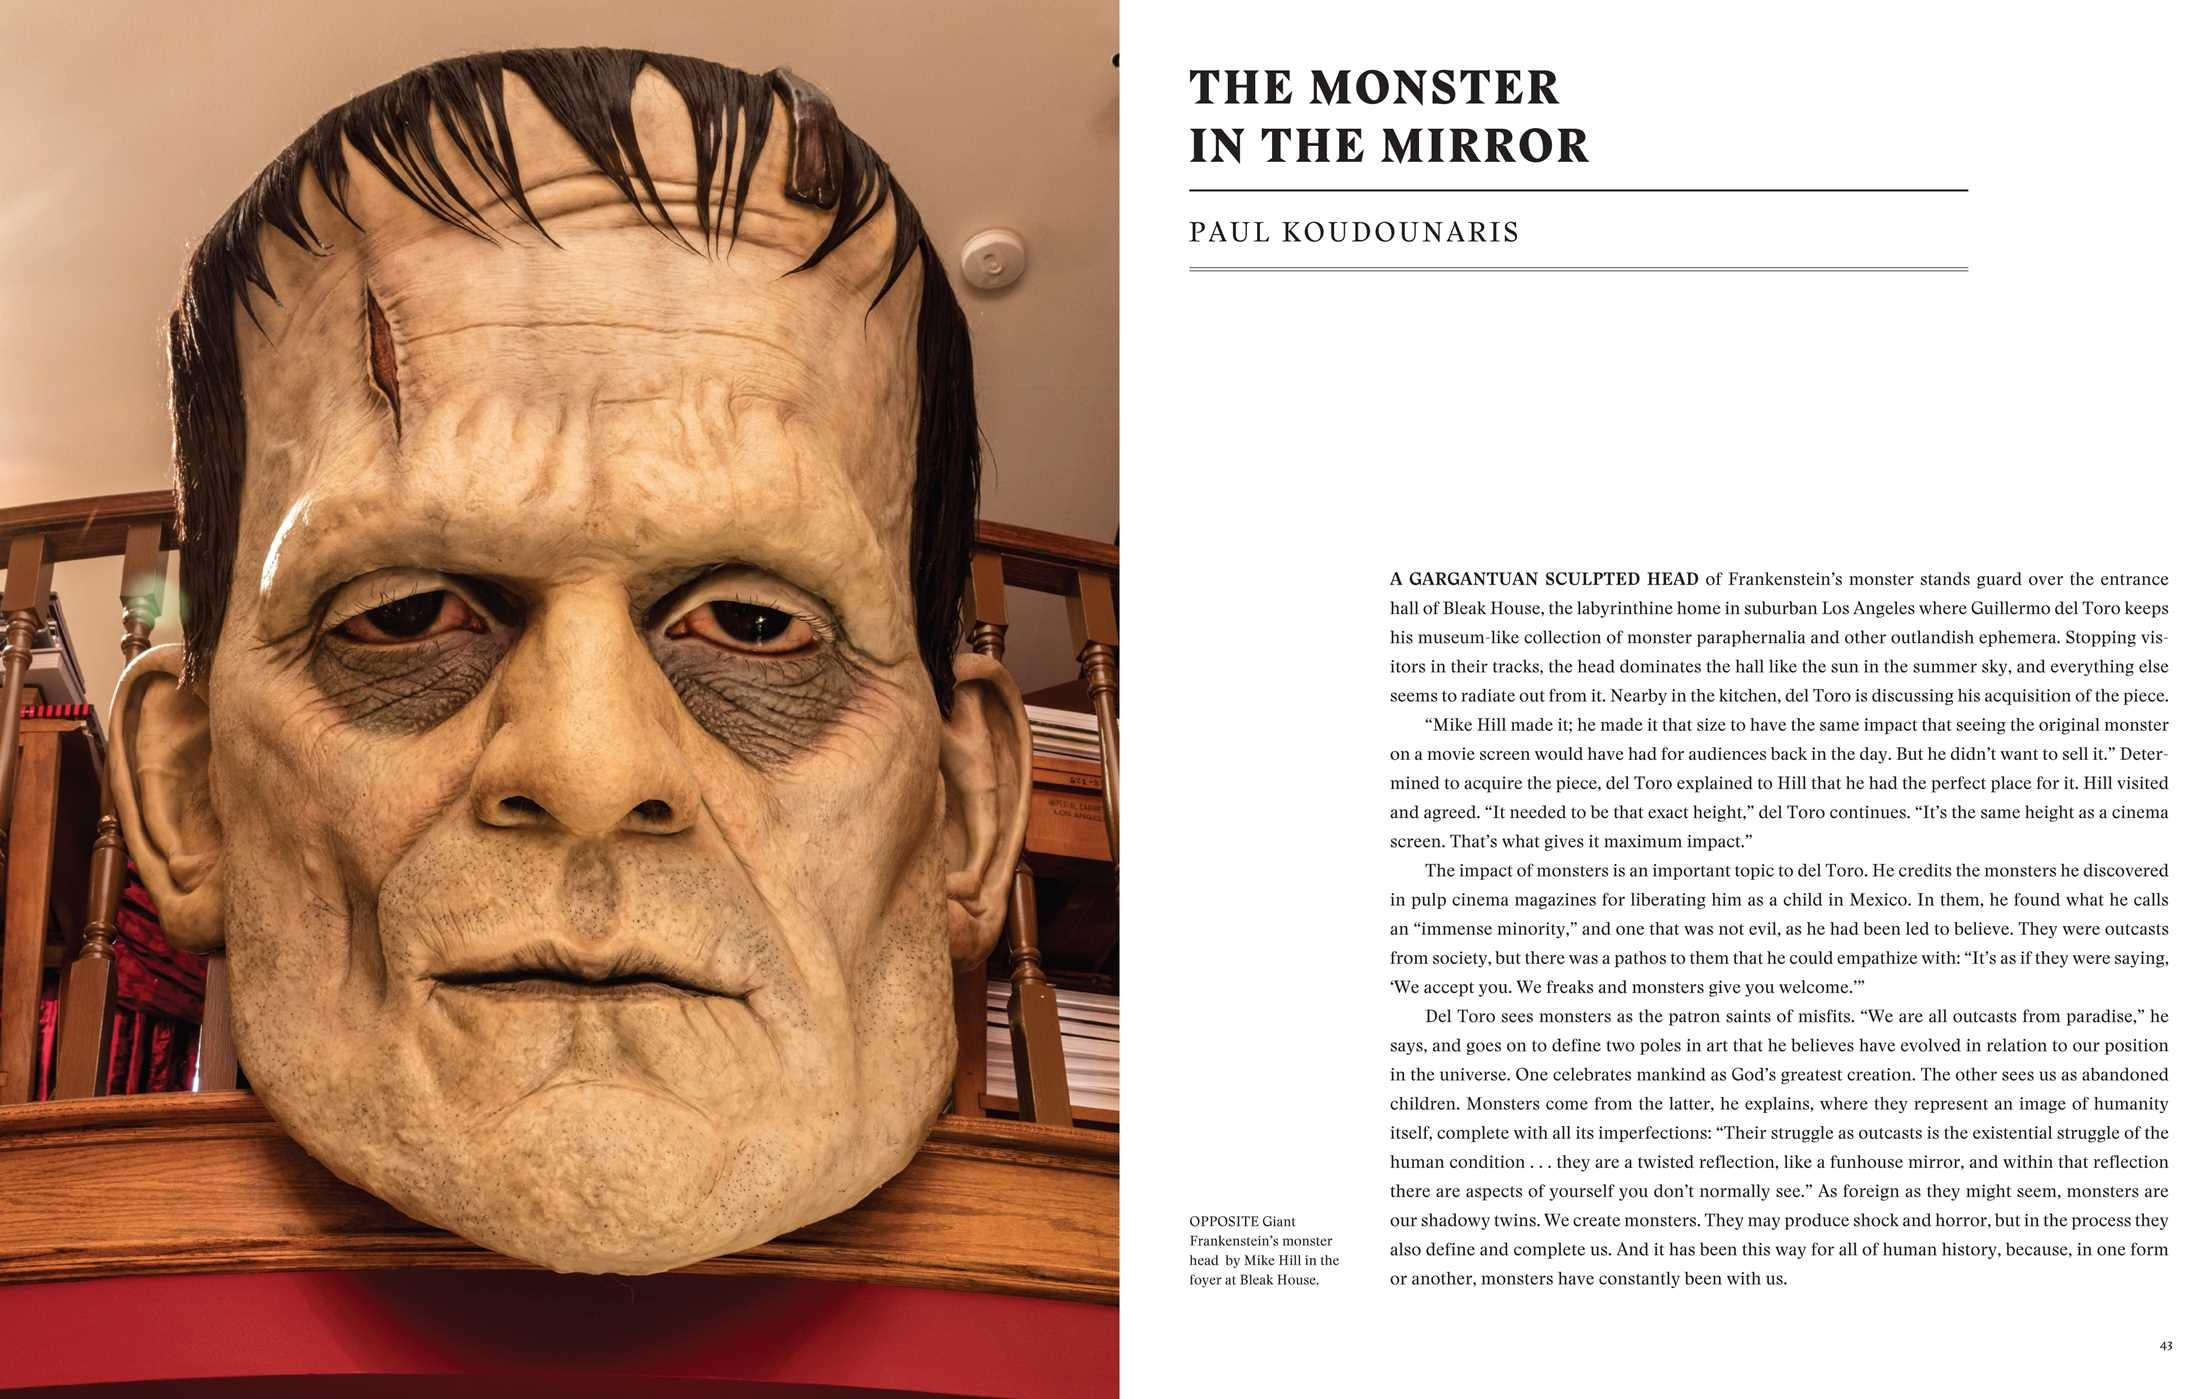 Guillermo del toro at home with monsters 9781608878604.in03